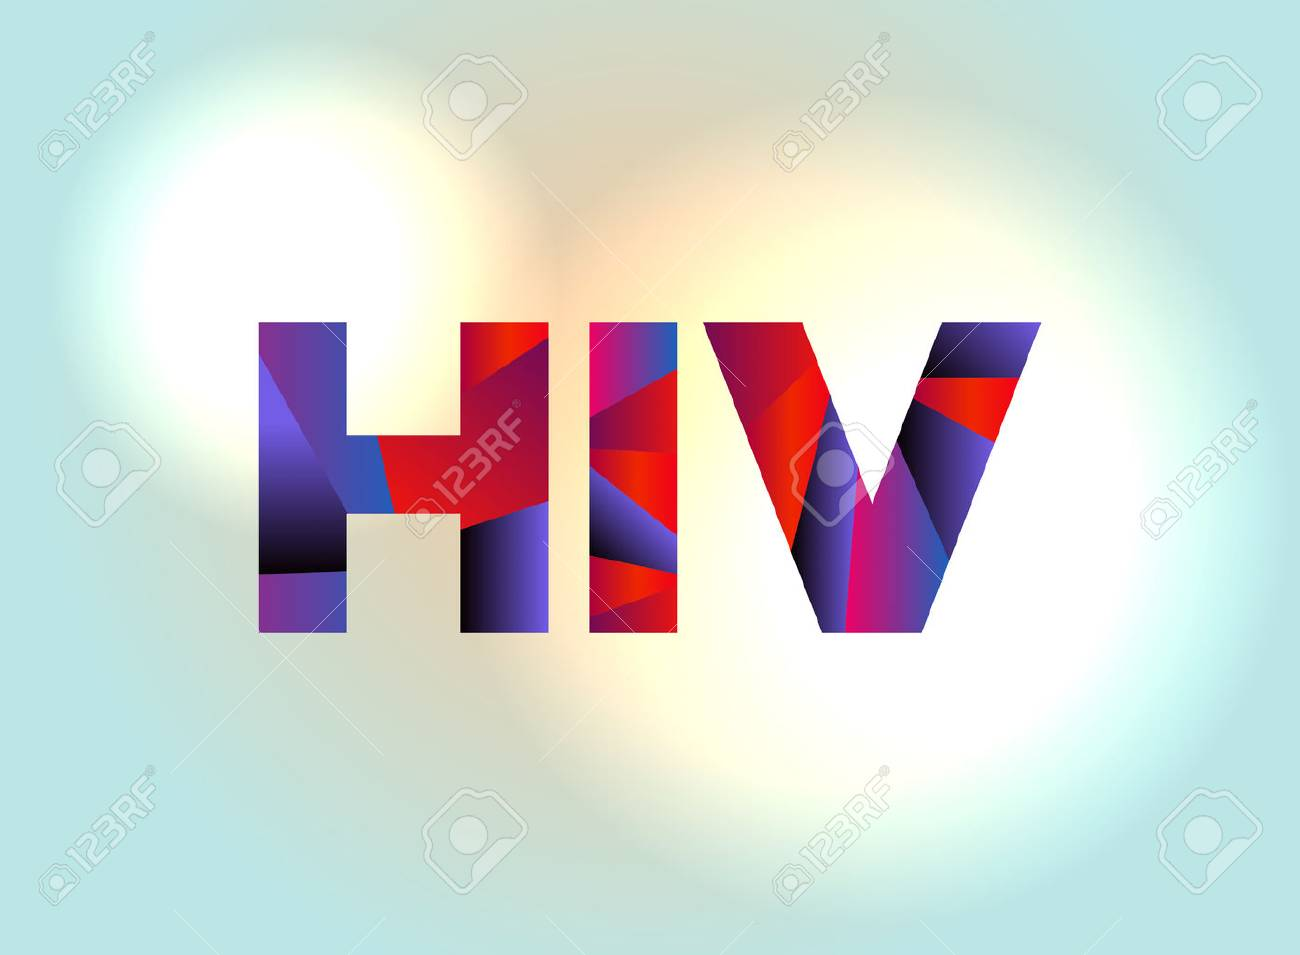 The letters HIV written in colorful abstract word art on a vibrant background. Vector EPS 10 available. - 88526675